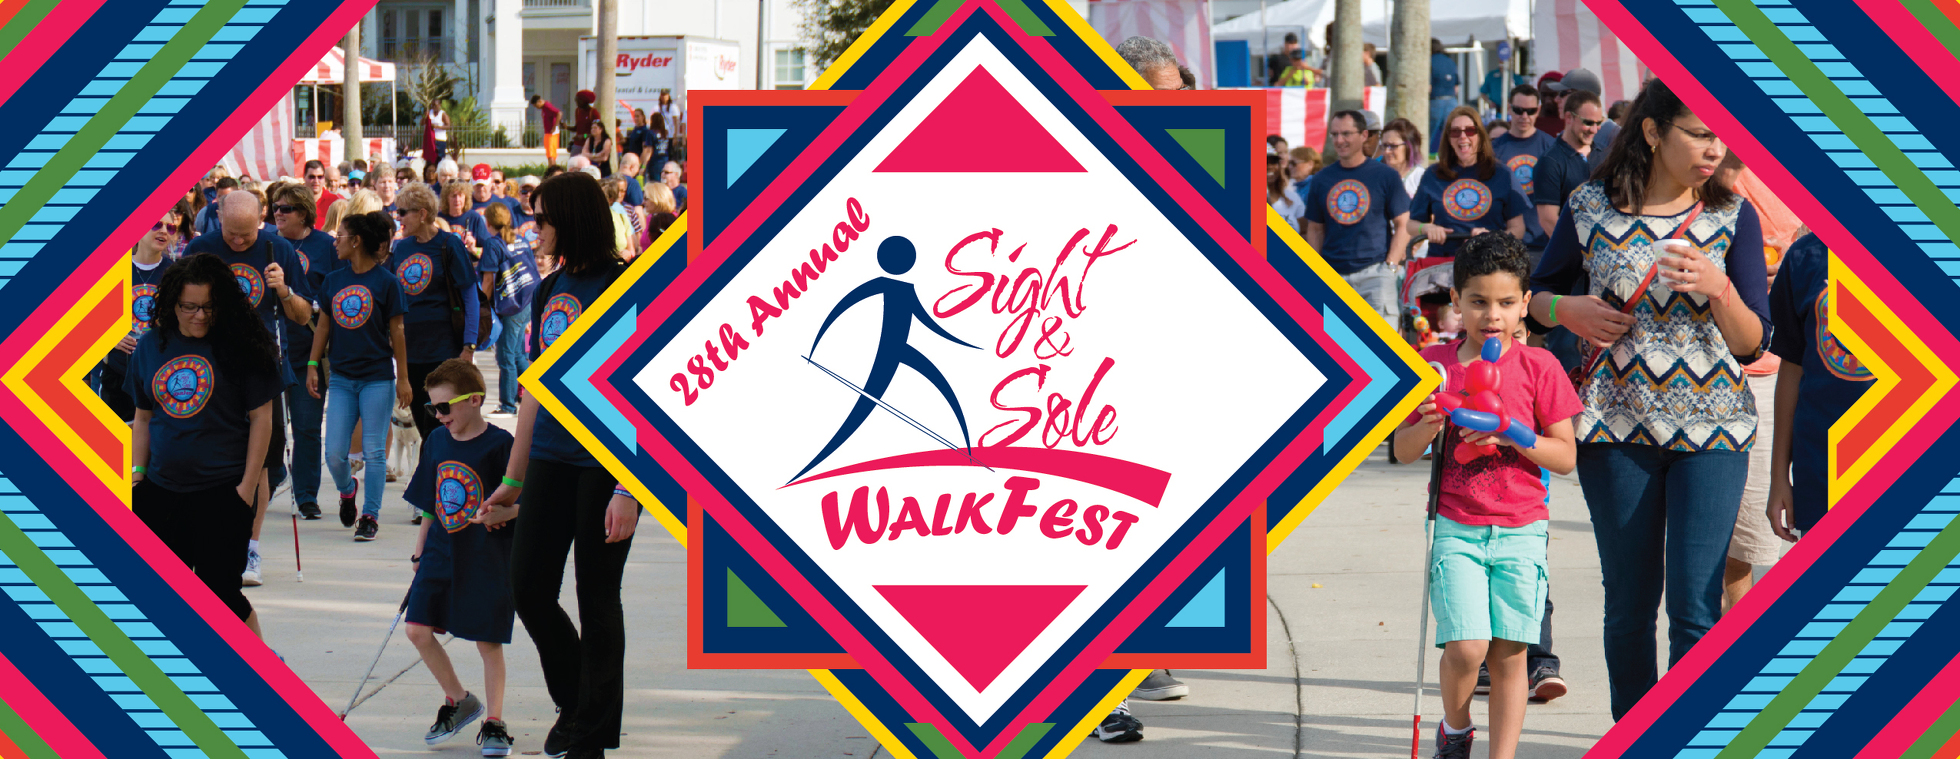 Sight & Sole WalkFest